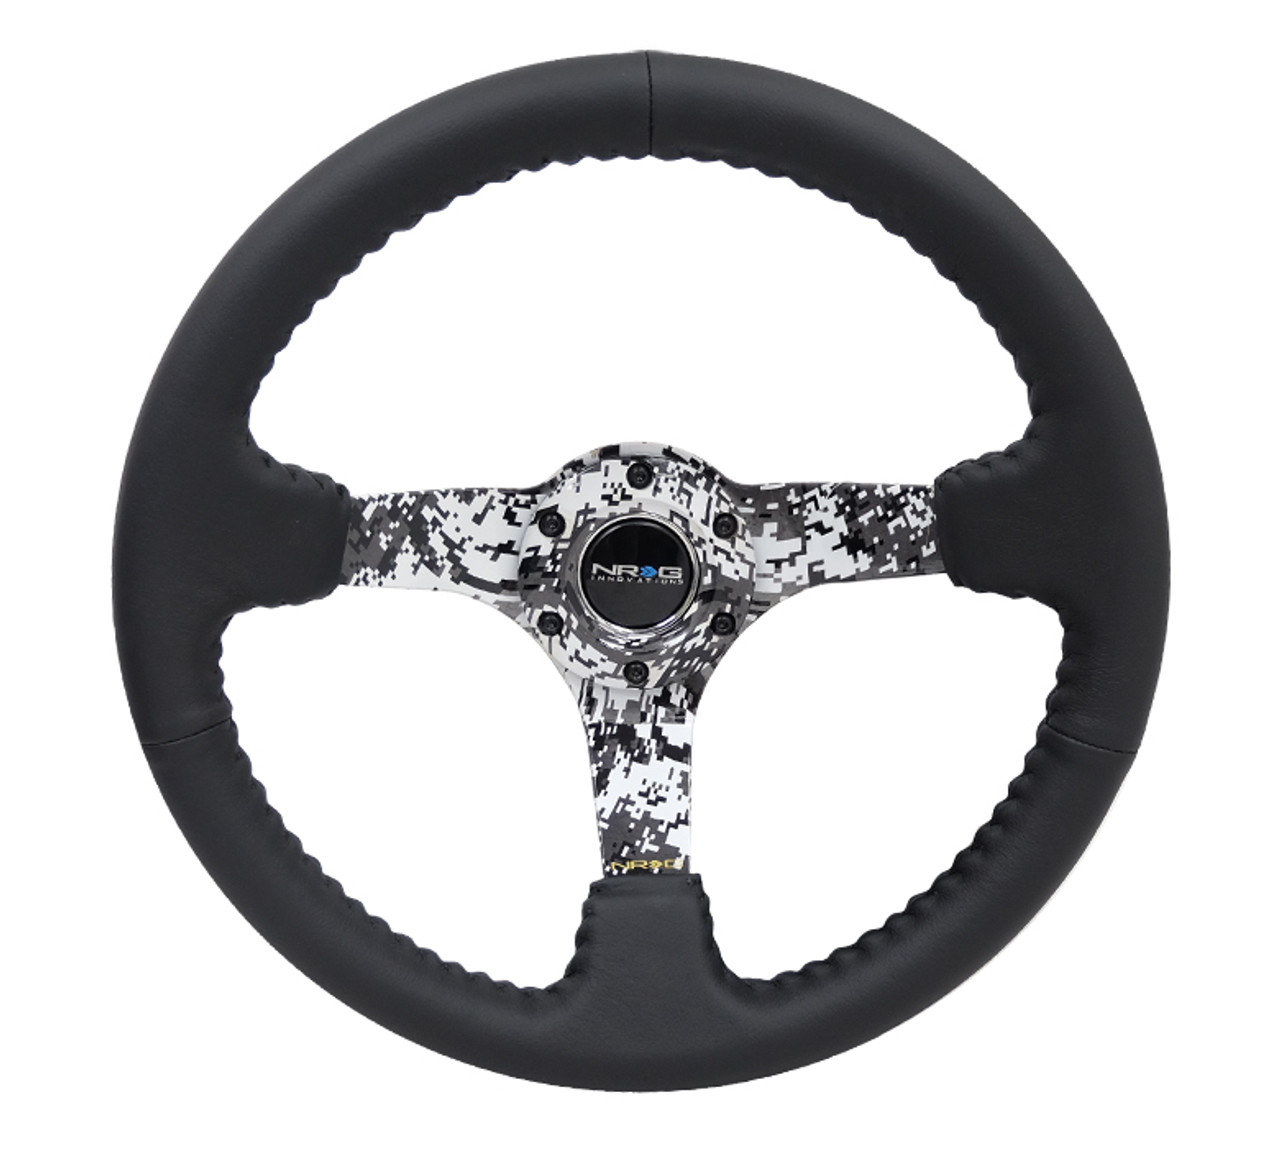 NRG Deep Dish Steering Wheel Black Leather Digital Army Camo Center